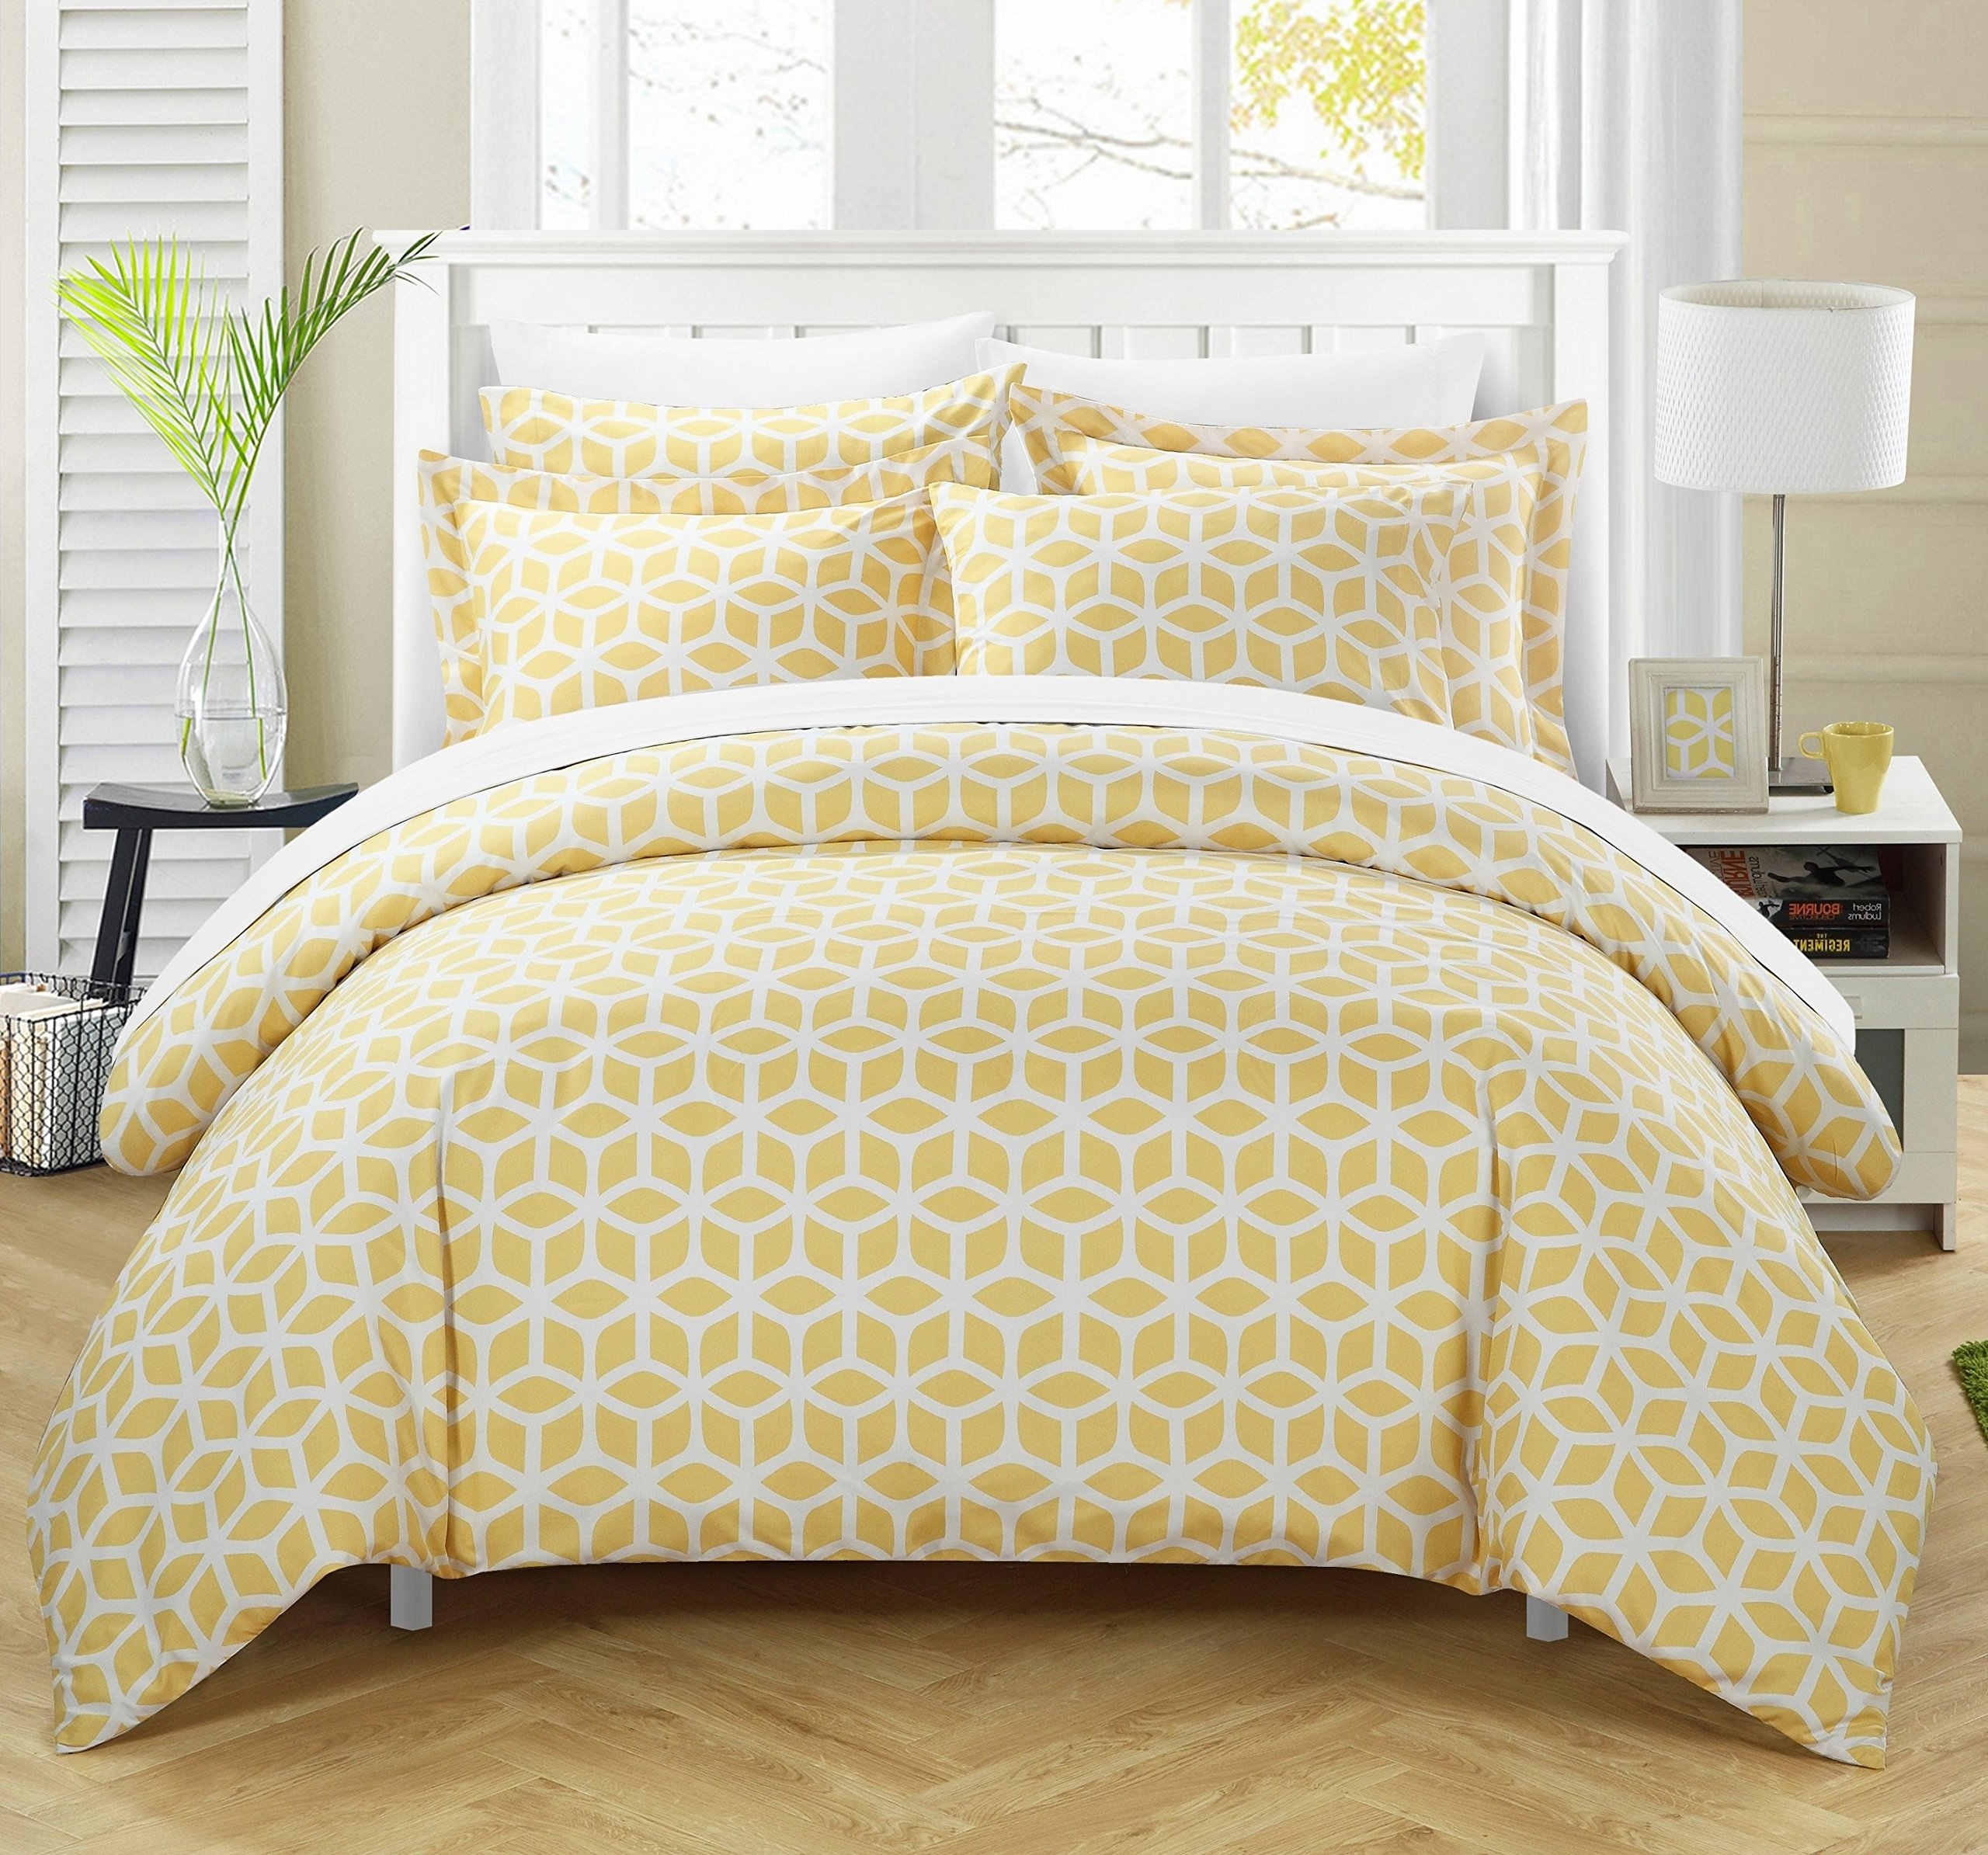 Chic Home 3 Piece Cyril Geometric Diamond Printed reversible Queen Duvet-Cover-sets Yellow